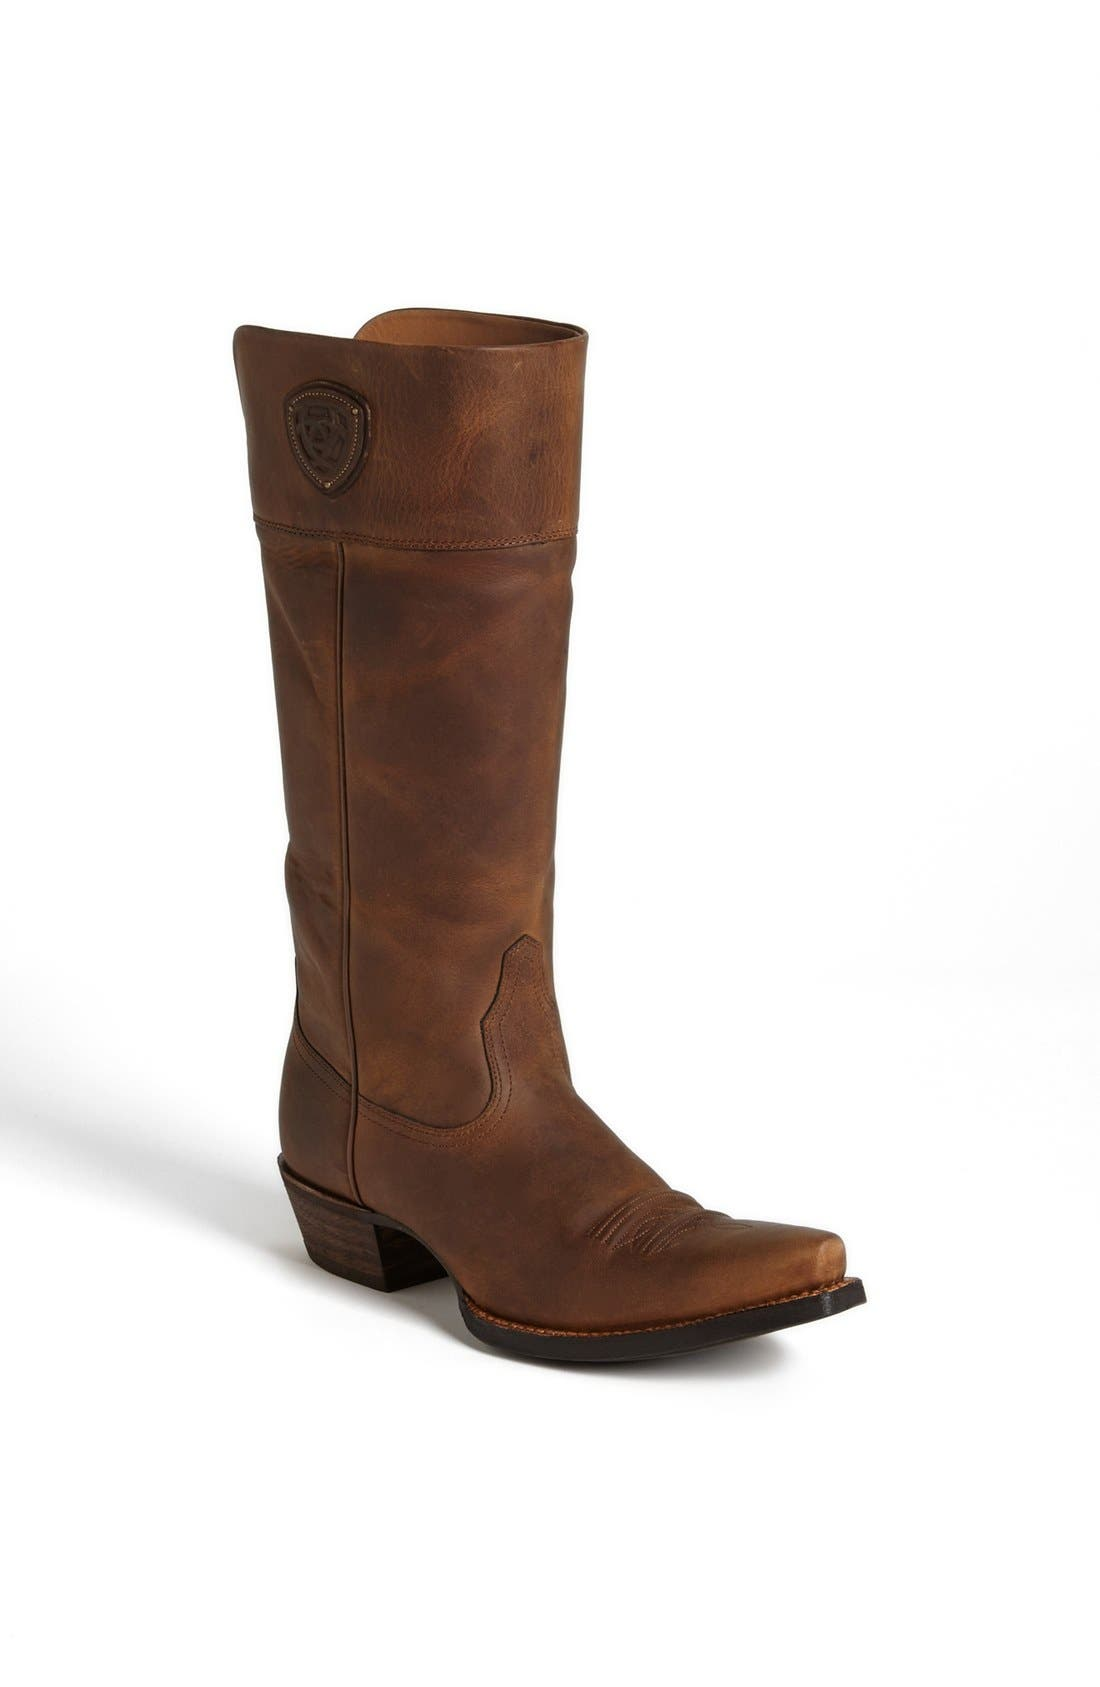 Alternate Image 1 Selected - Ariat 'Chandler' Boot